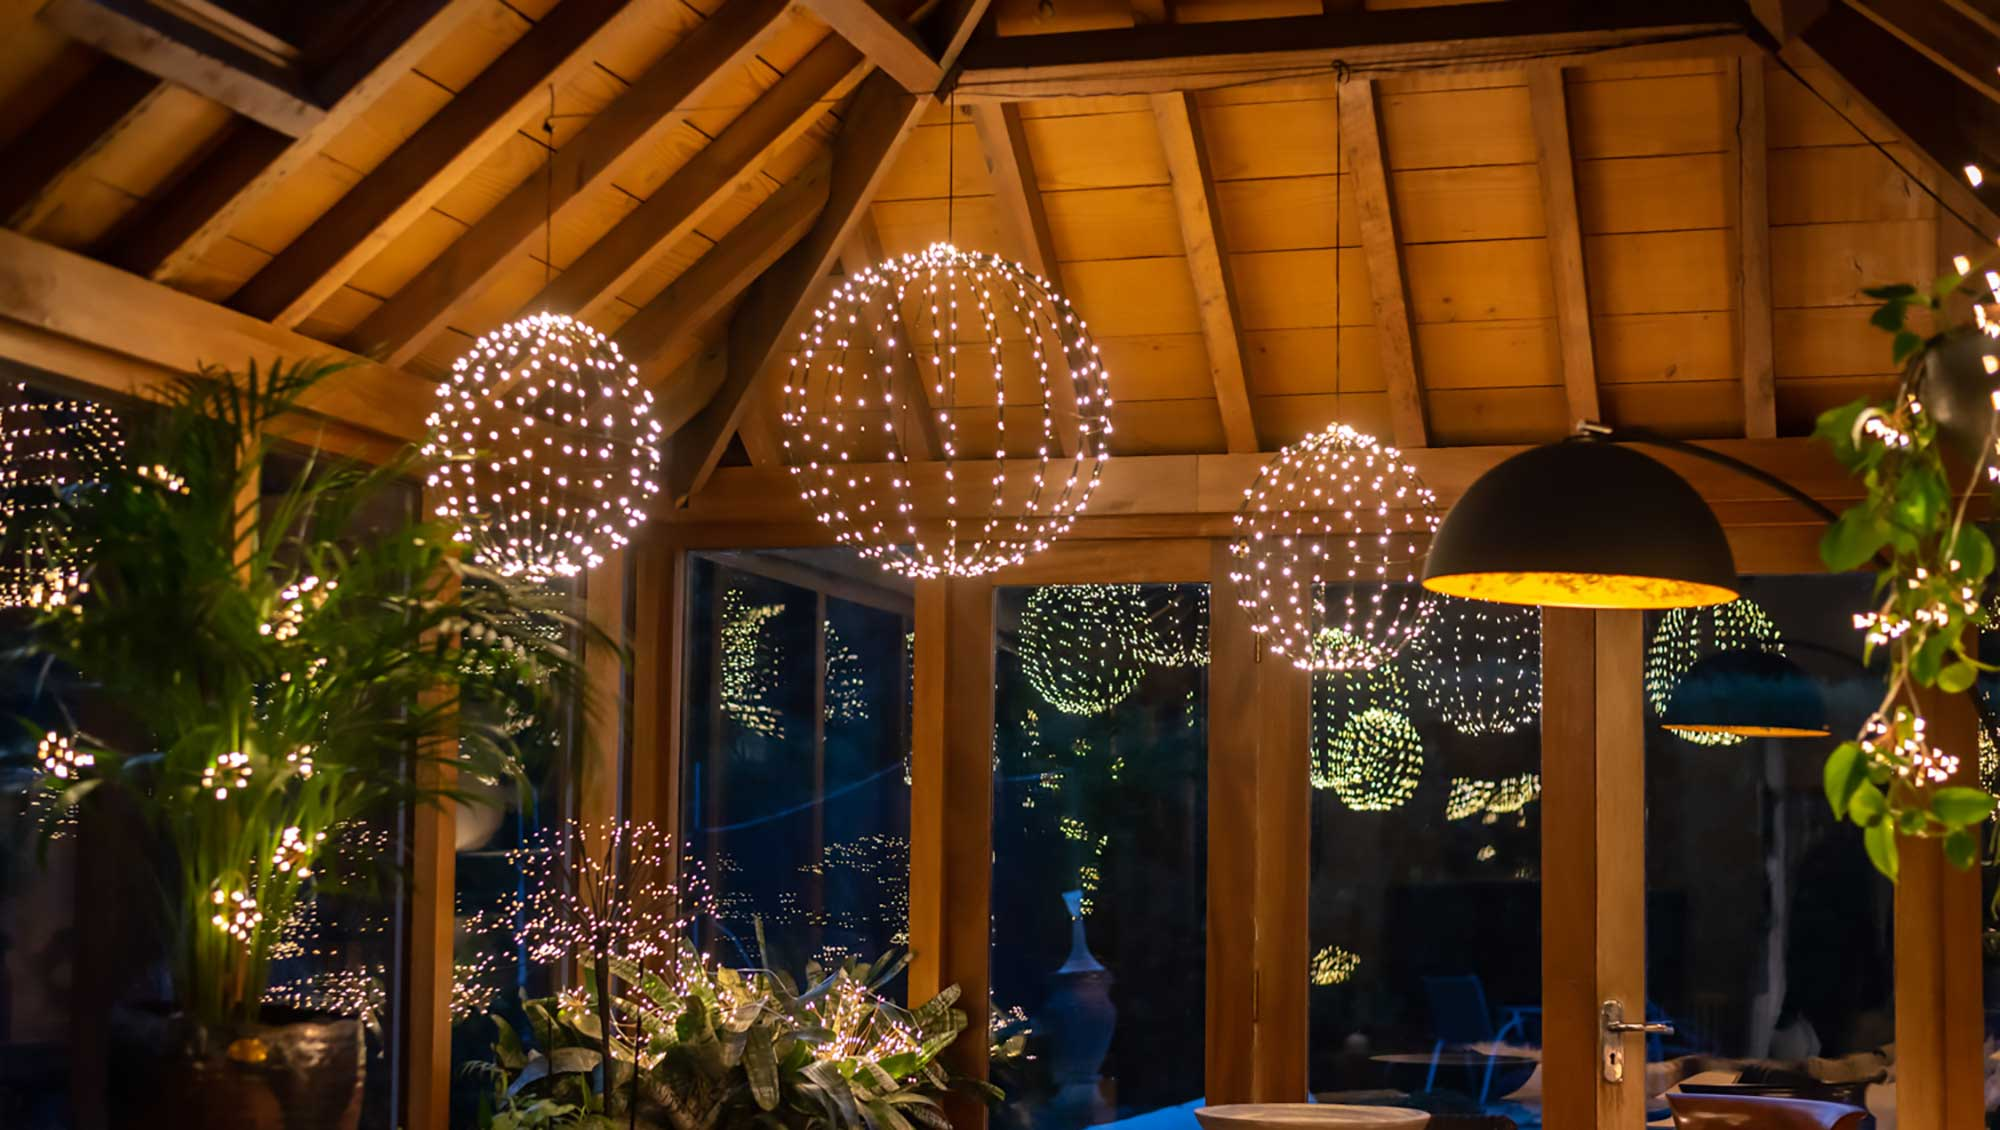 light globes hanging from ceiling